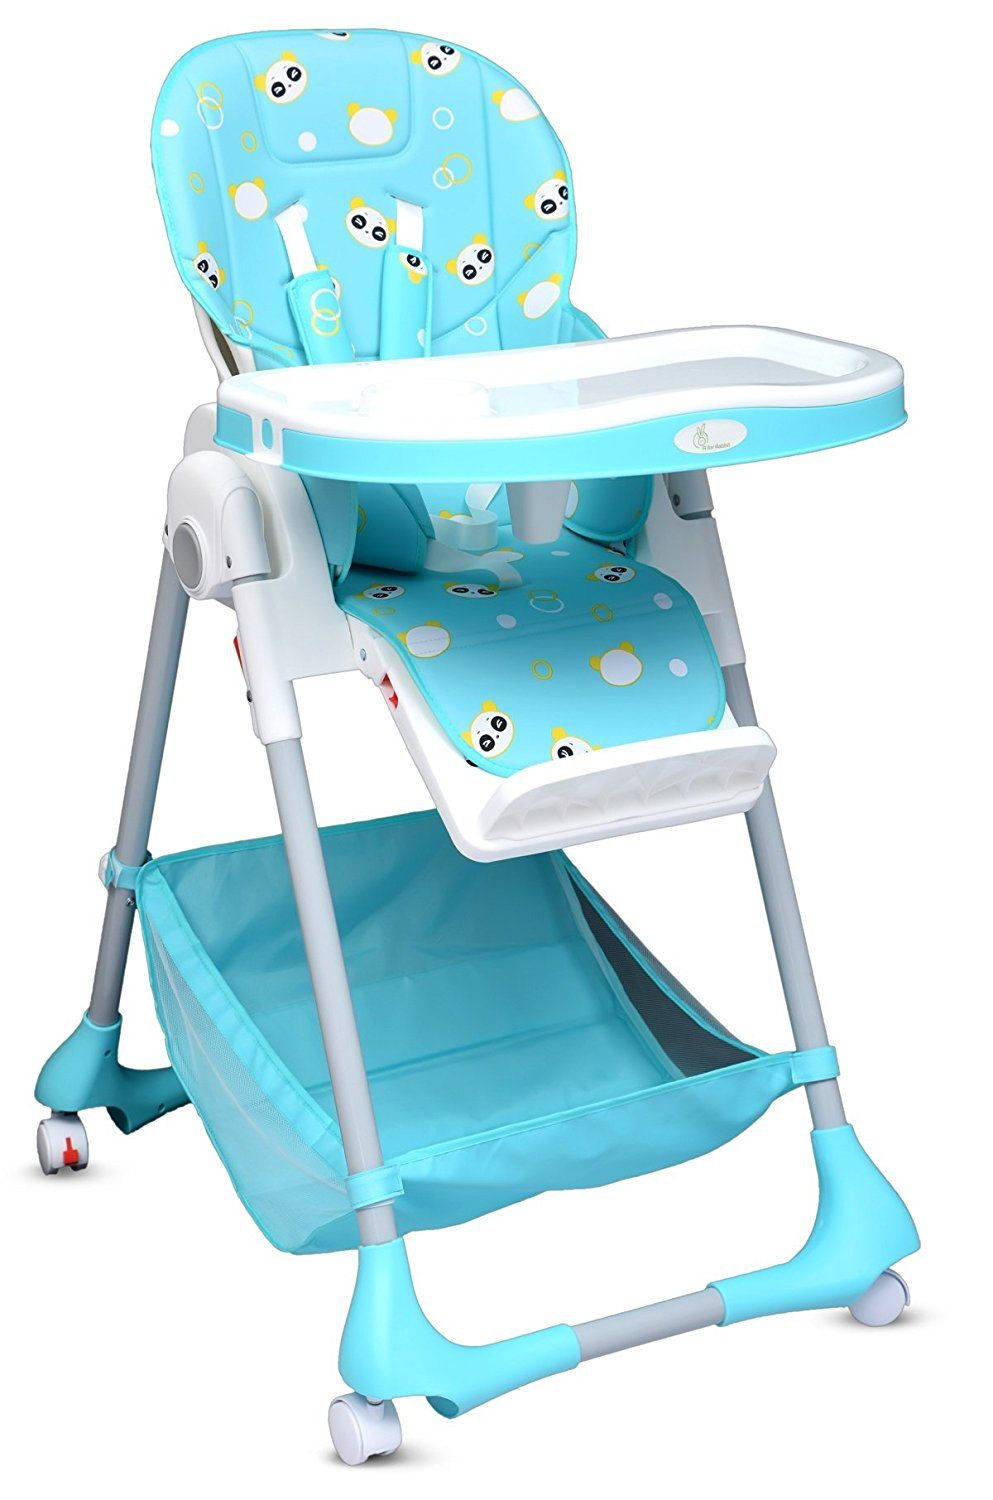 High Chair Or Booster Seat Or A Combination Your Ultimate Guide To Buying A Feeding Chair High Chair Baby High Chair Booster Seat